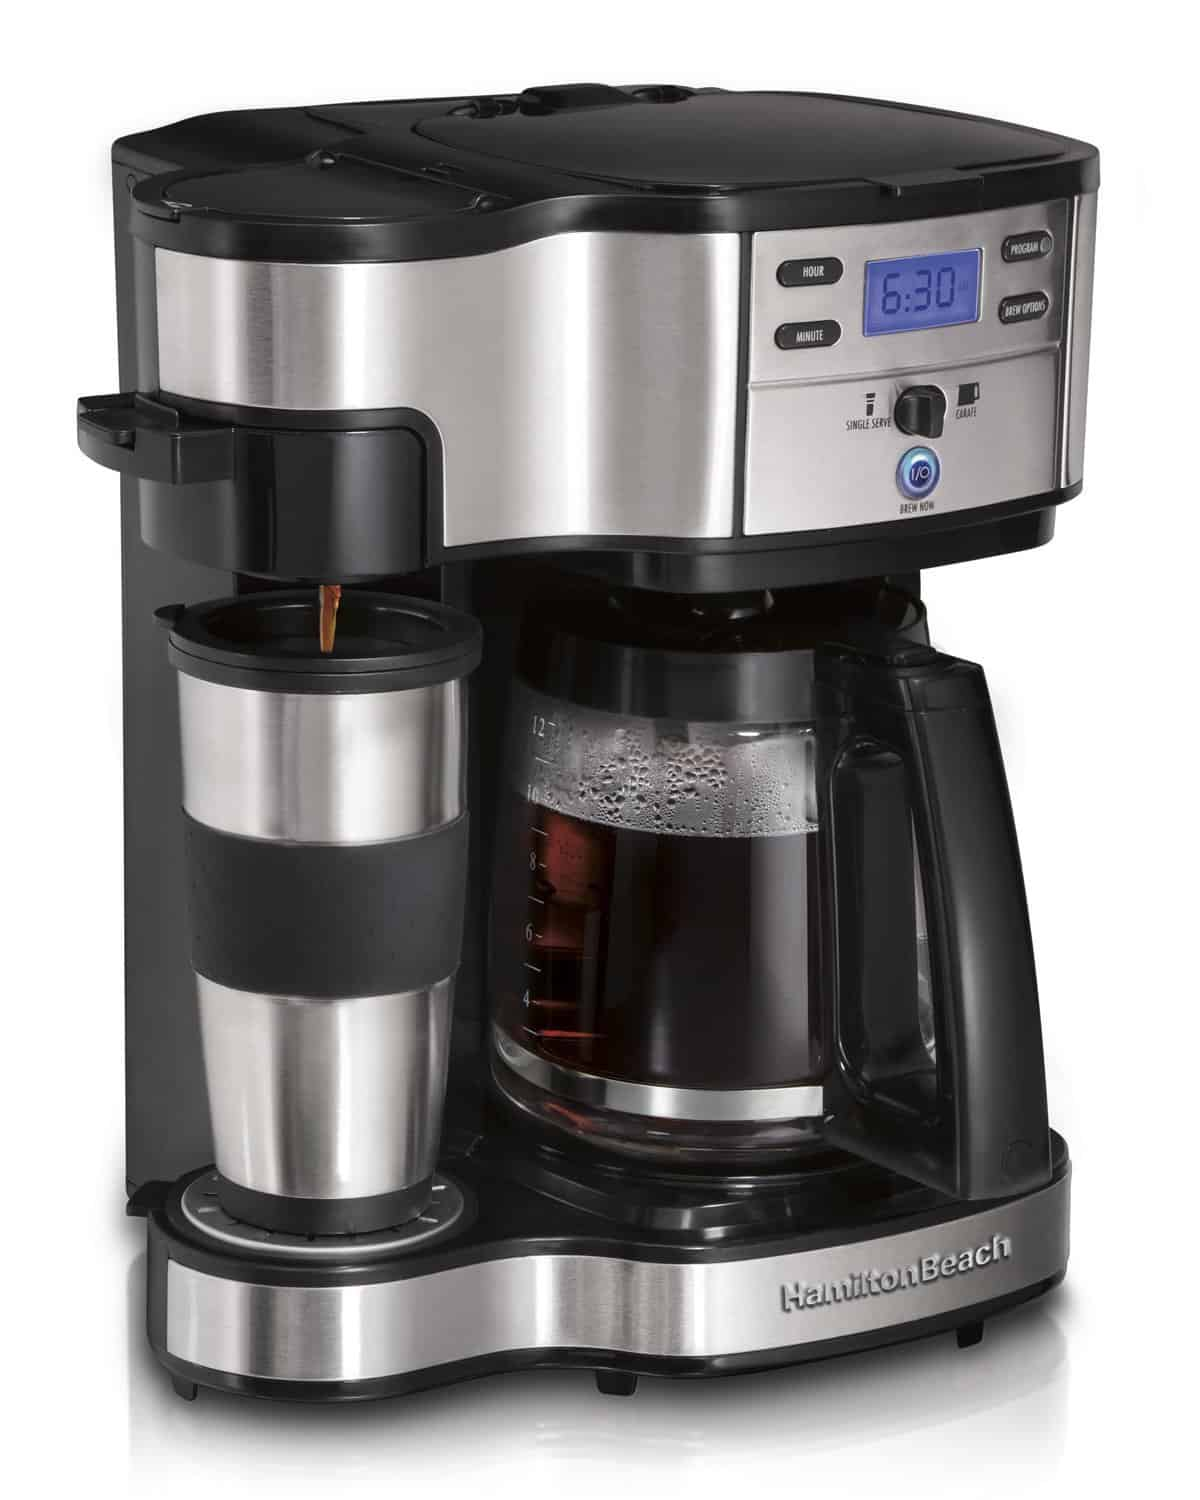 Electronic What Coffee Machine Should I Buy what coffee maker should i buy 4 hats and frugal buy